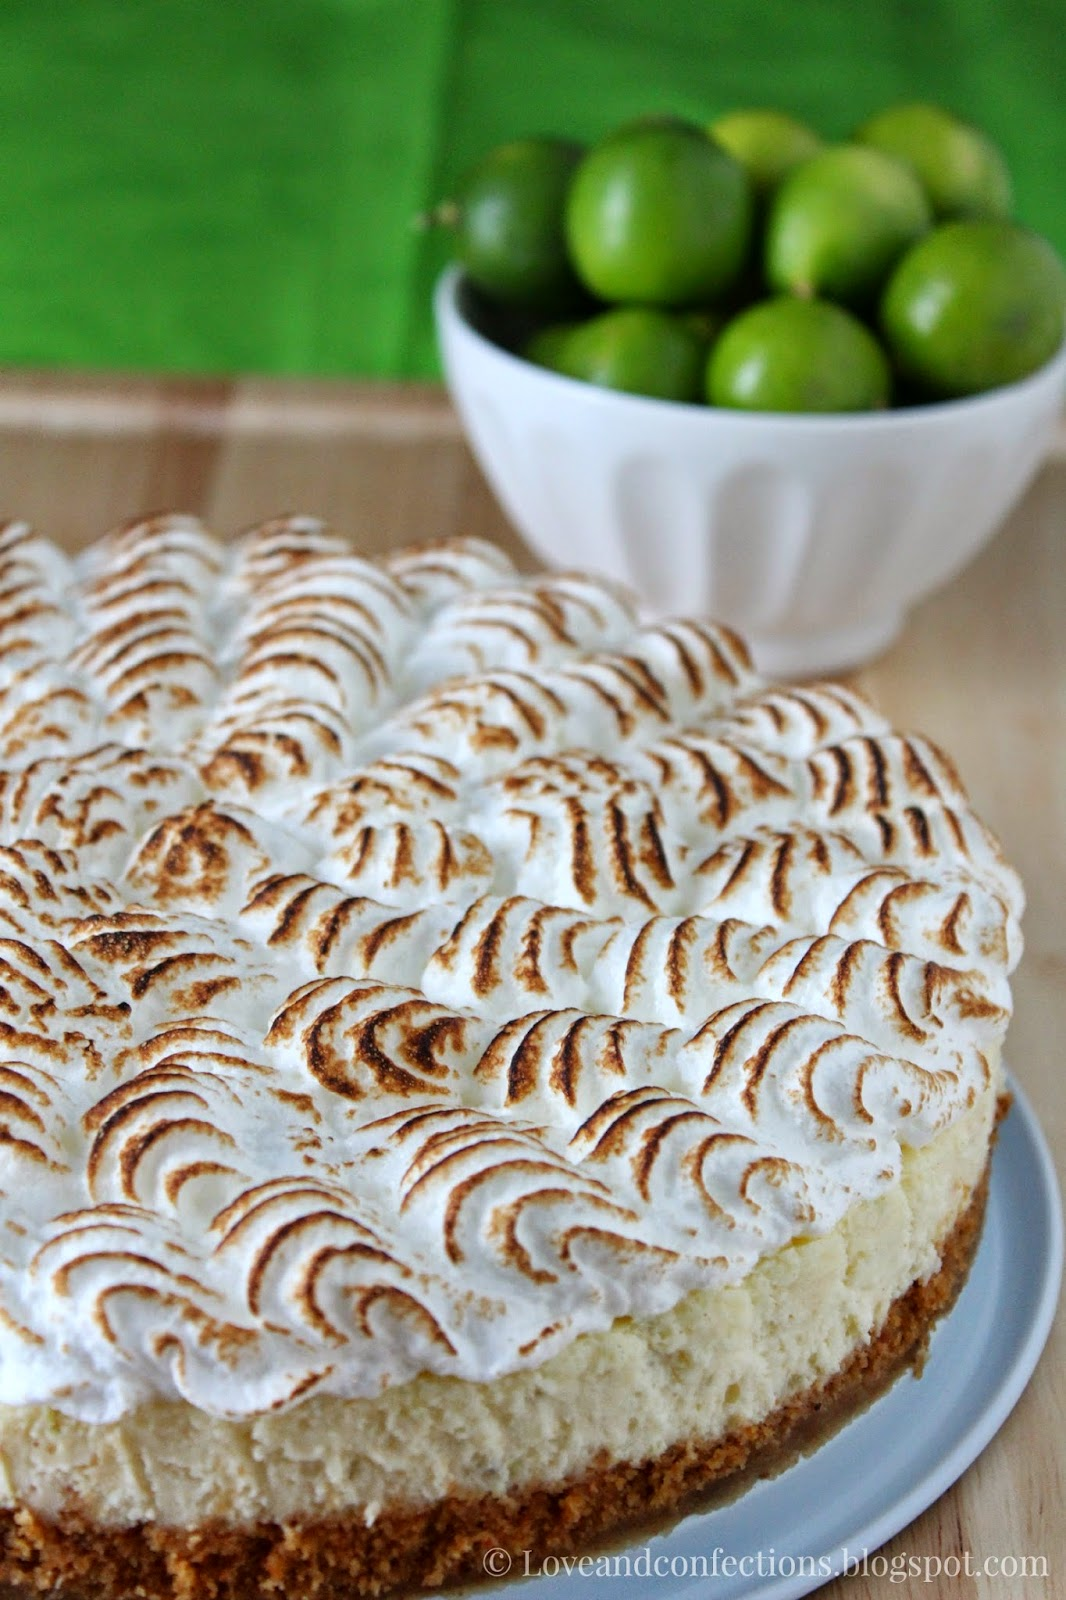 Love and Confections: Key Lime Pie Cheesecake